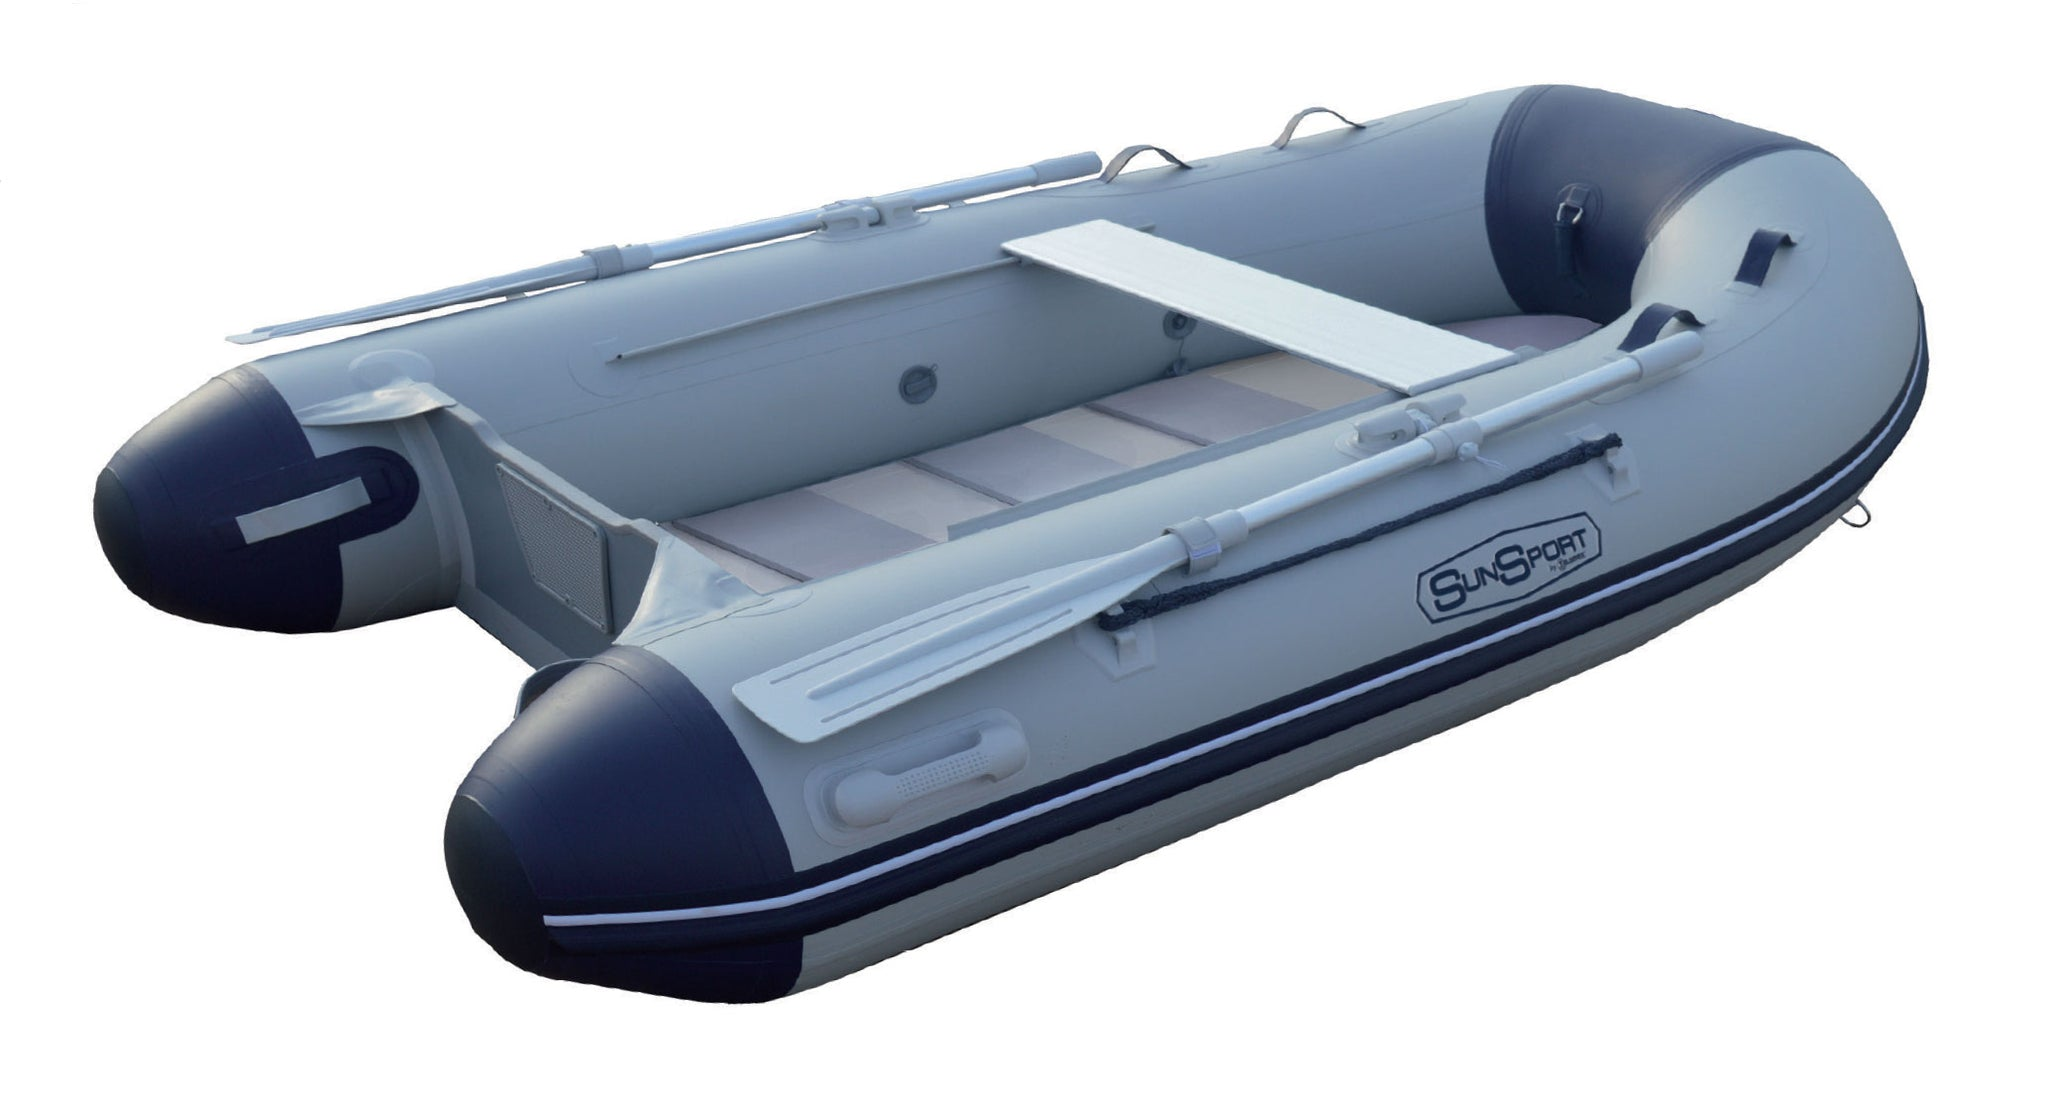 Sunsport Talamex 230 2.30m Inflatable Dinghy with Slatted Floor